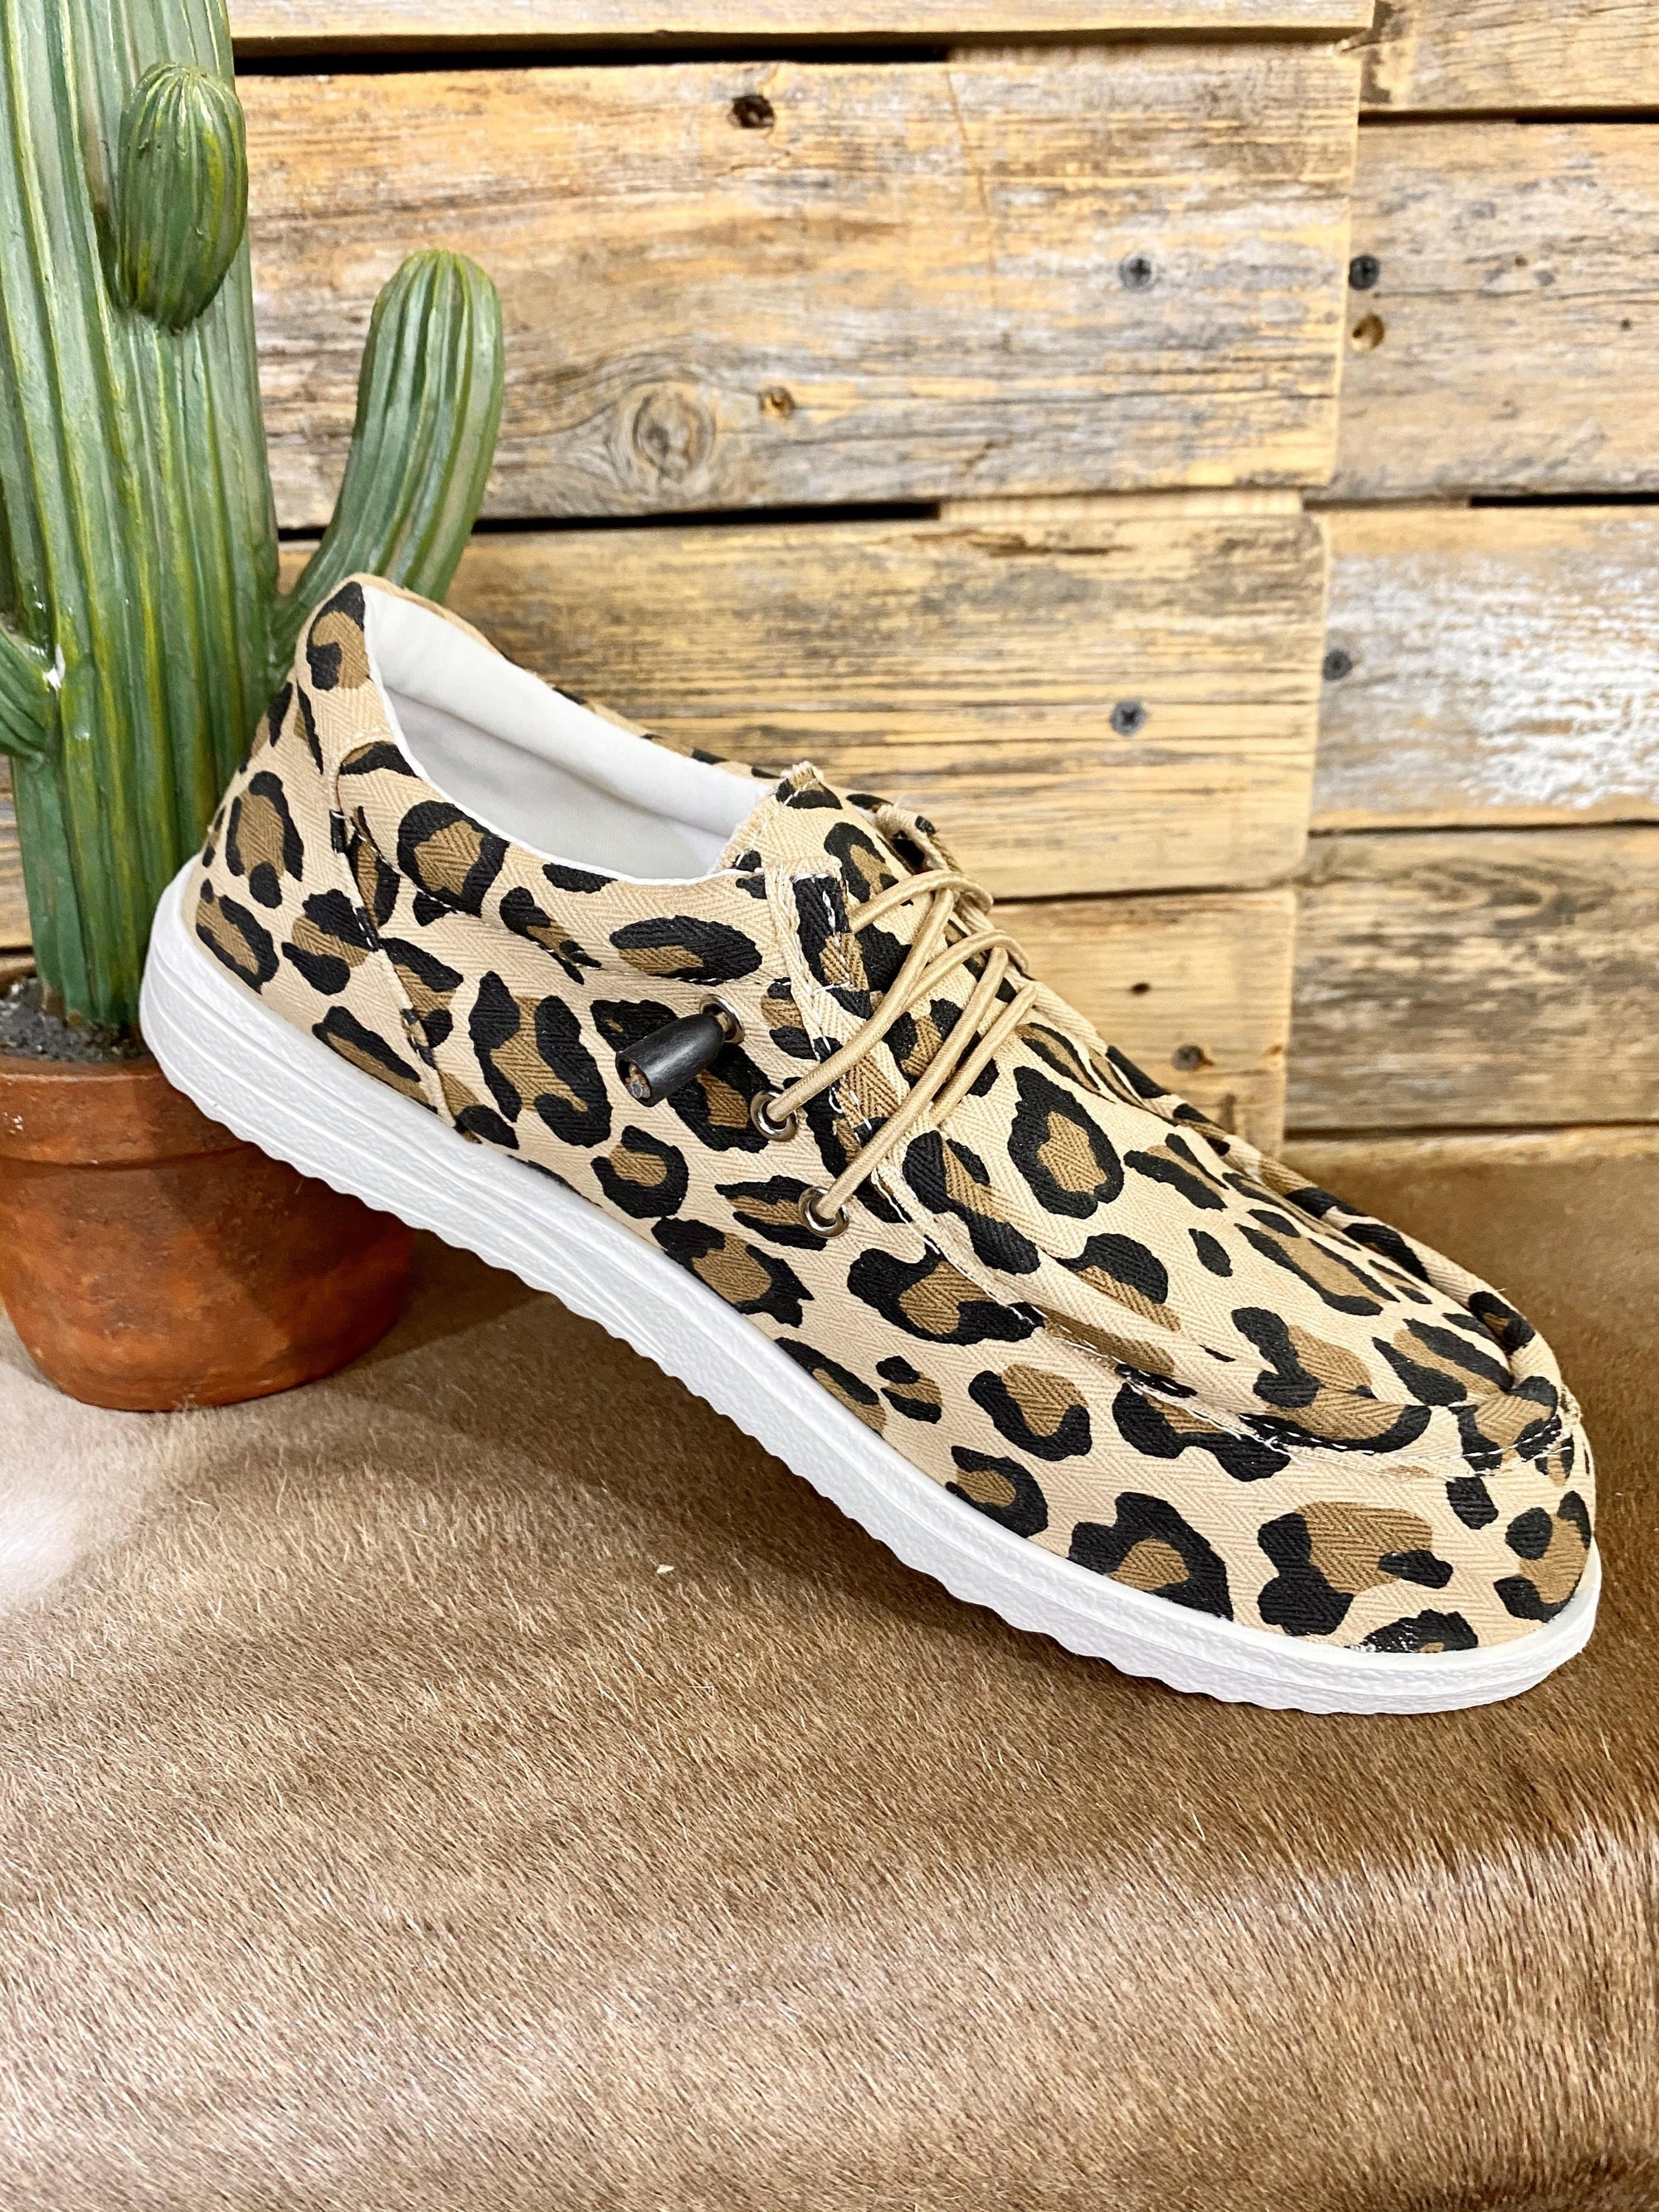 Wala Slip On Sneakers - Leopard